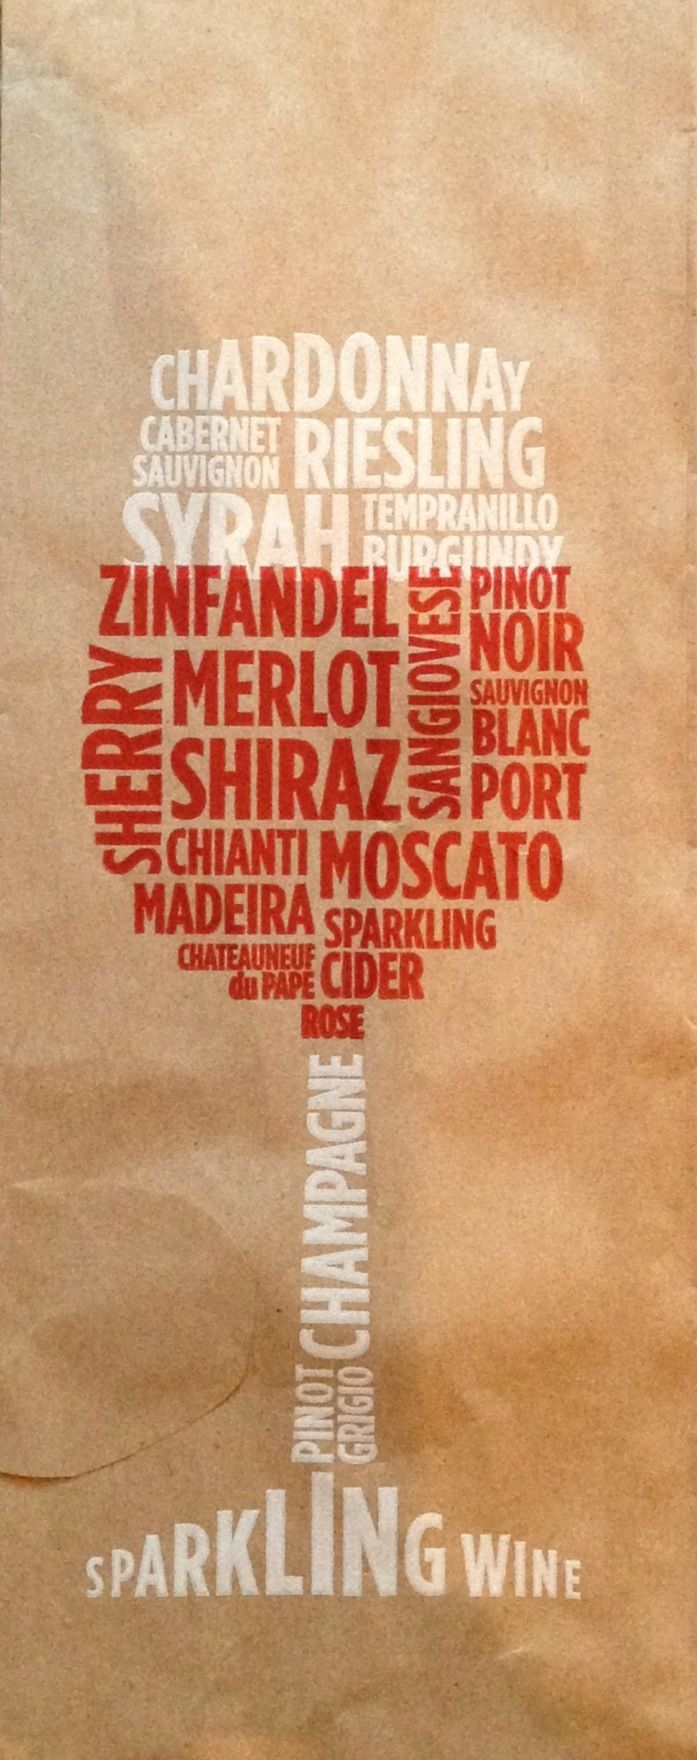 Wine word art. If its not already a real poster, we may get this one custom printed for our office.